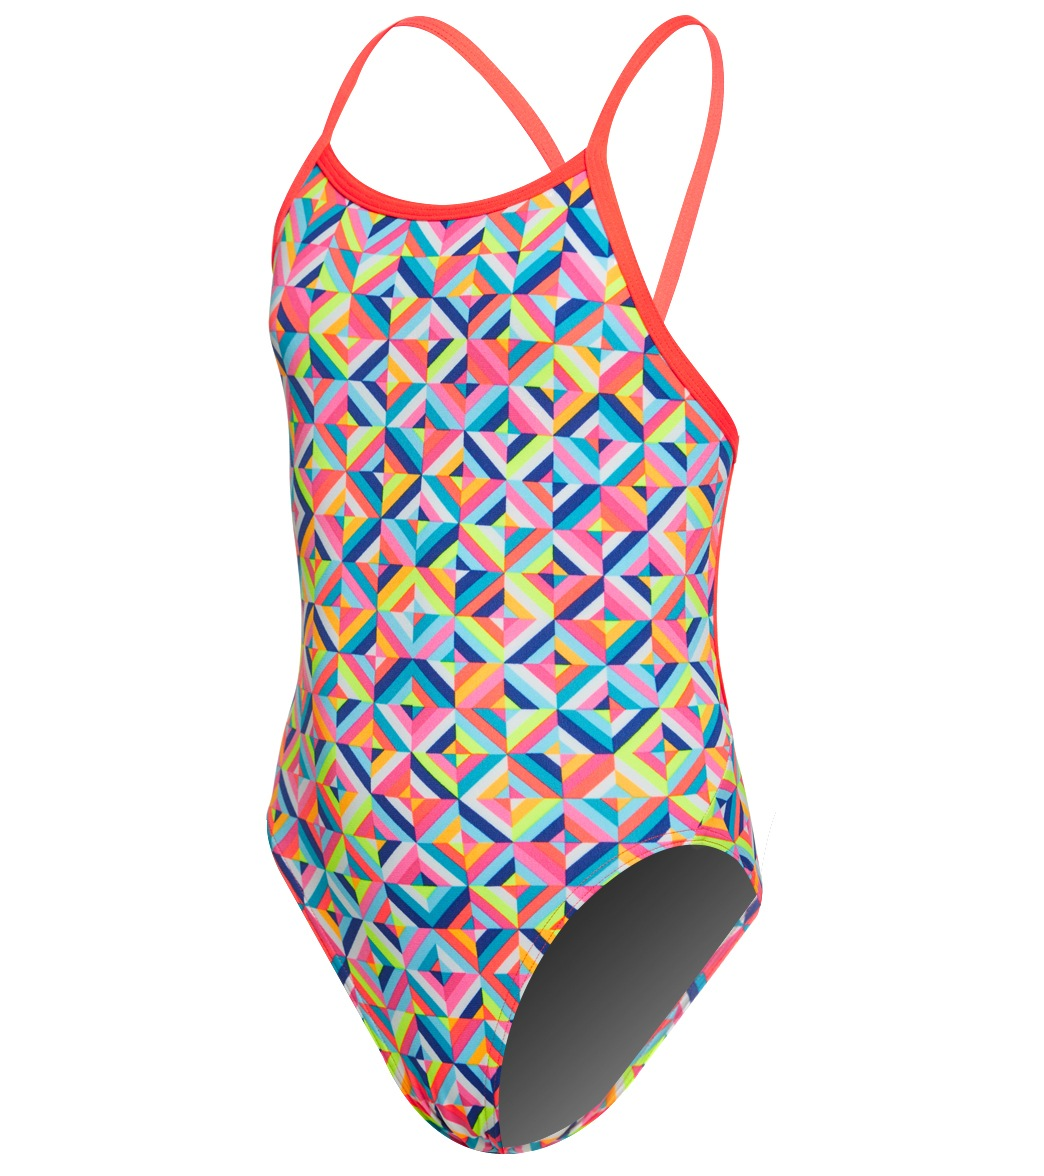 5006e2a9f1 Funkita Girls  Flash Bomb Single Strap One Piece Swimsuit at SwimOutlet.com  - Free Shipping